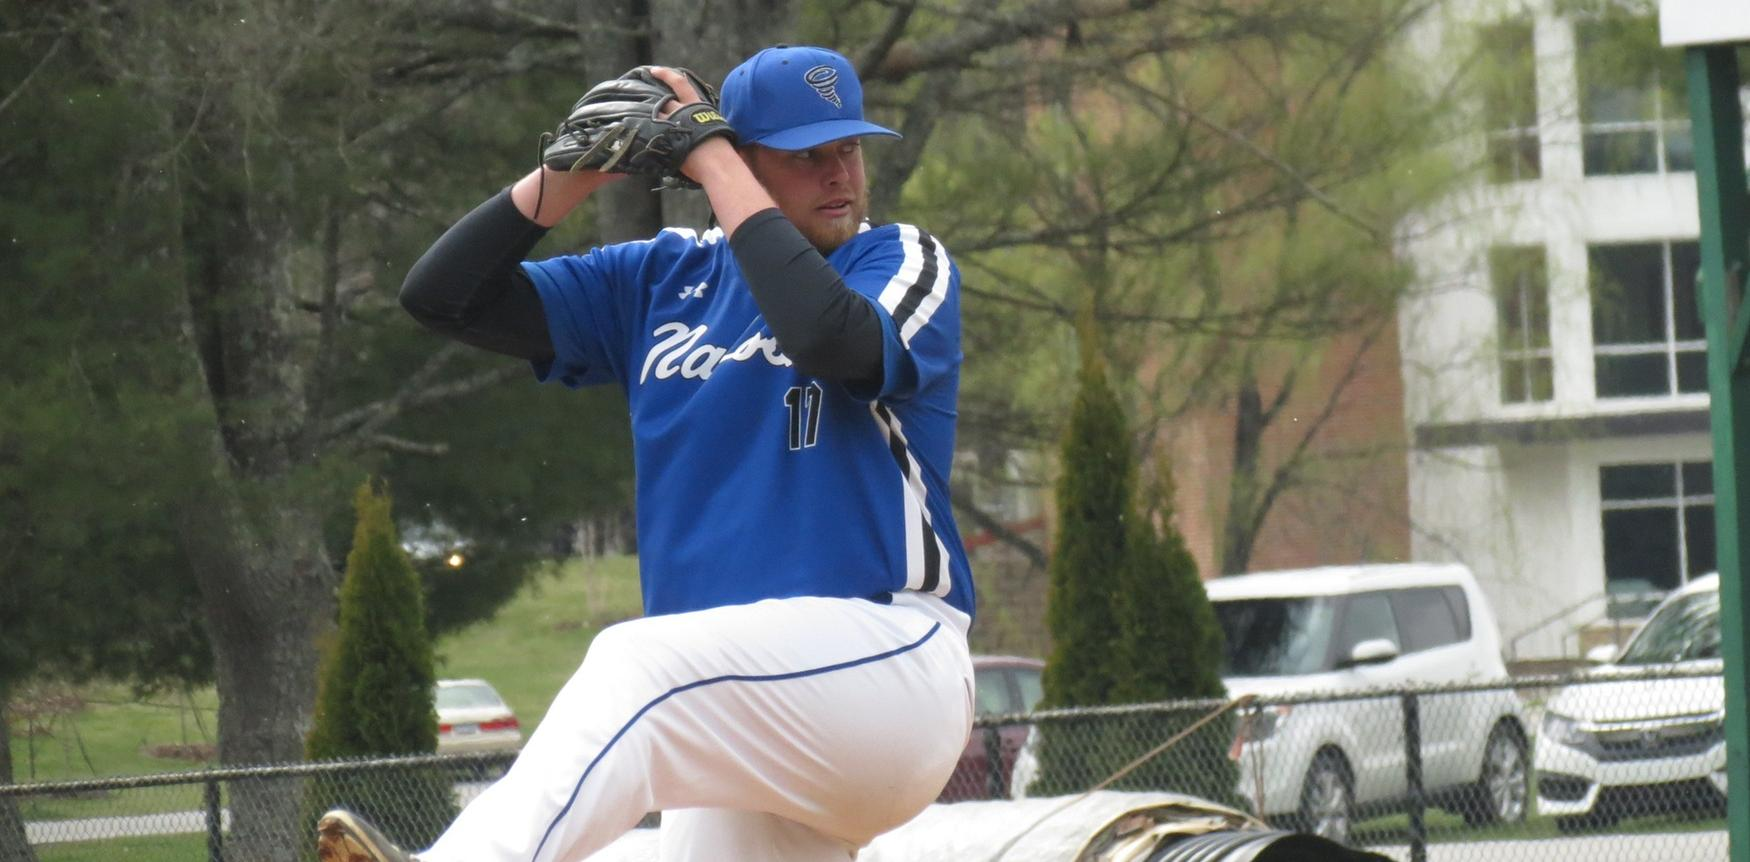 Merryman's Stellar Outing, Seventh-Inning Rally Lifts Tornados over Wasps